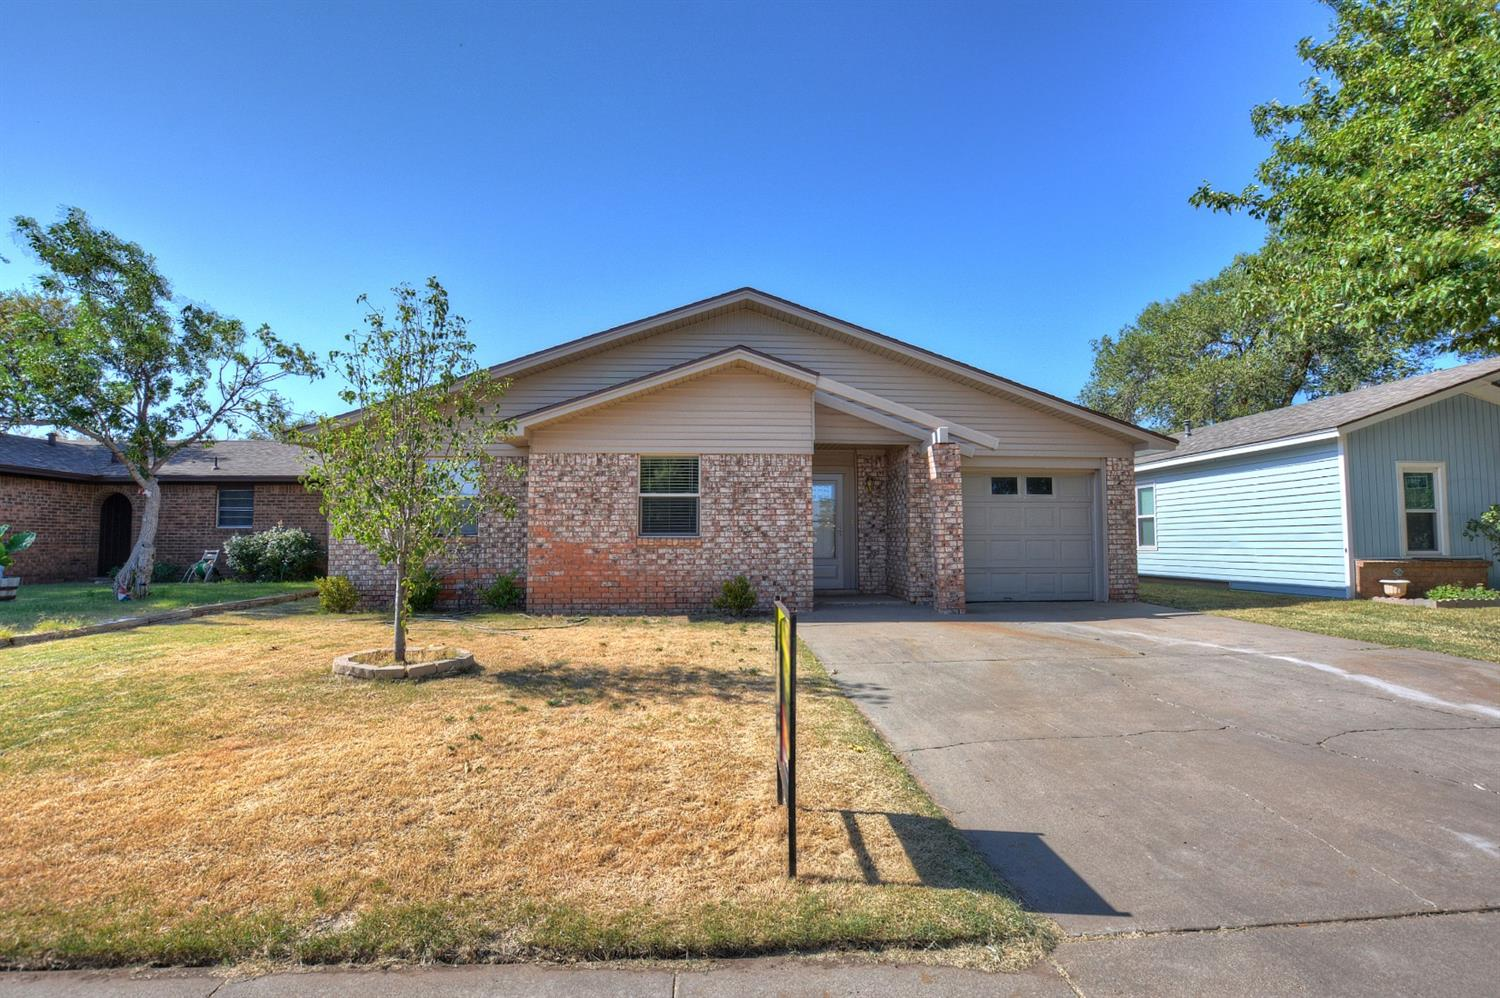 6311 27th Street, Lubbock in Lubbock County, TX 79407 Home for Sale